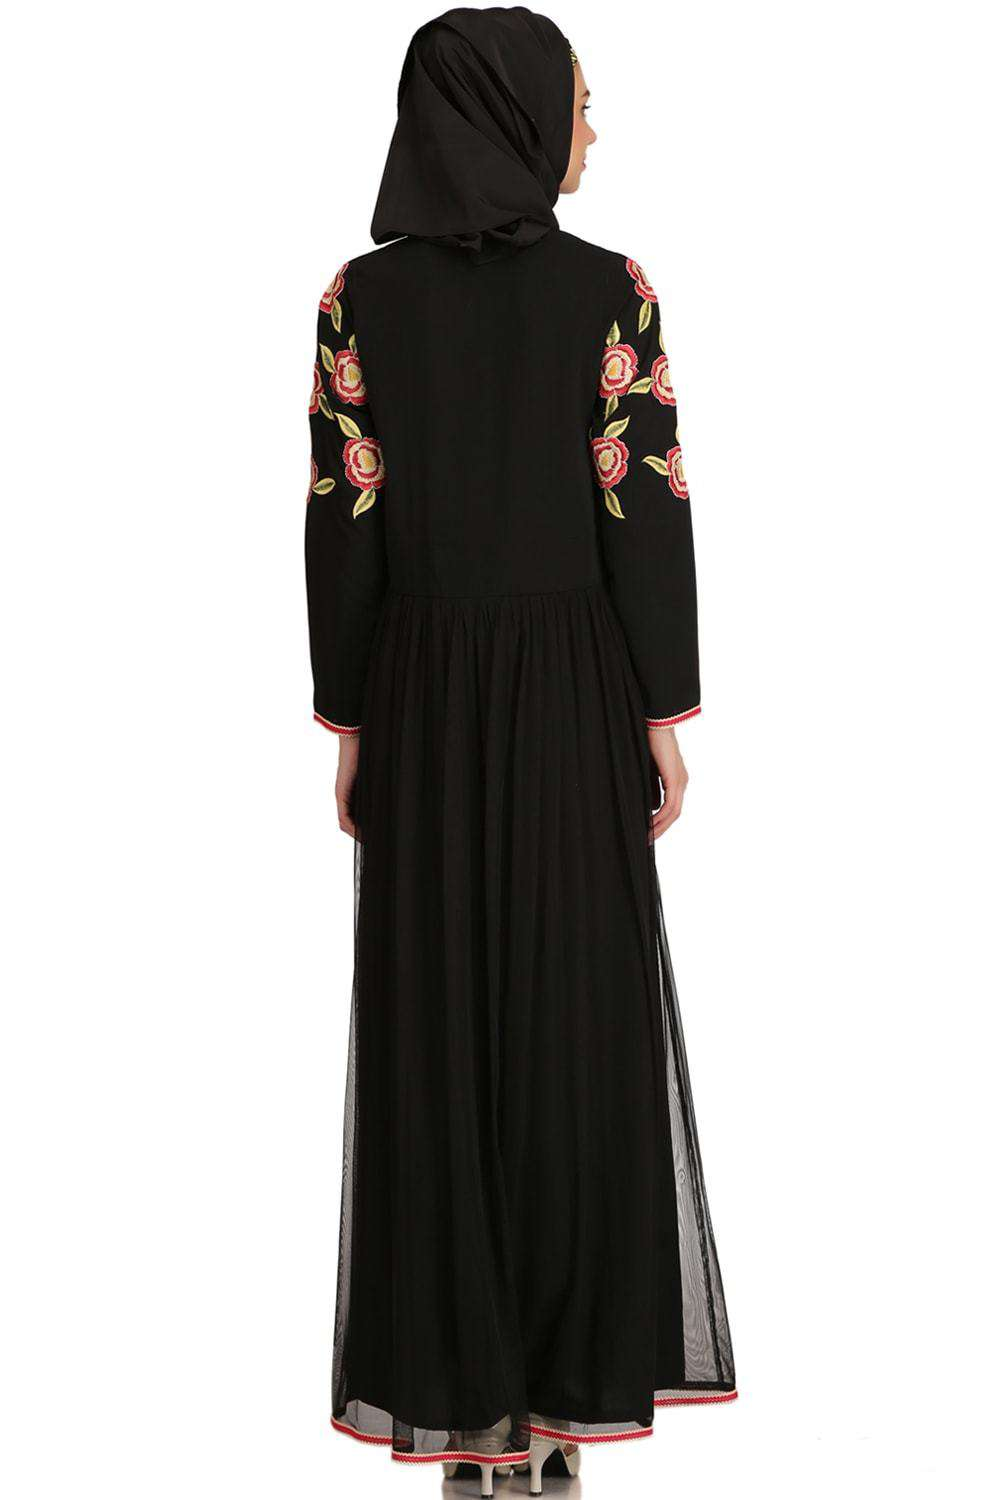 Mumina Black Nida & Net Abaya Back